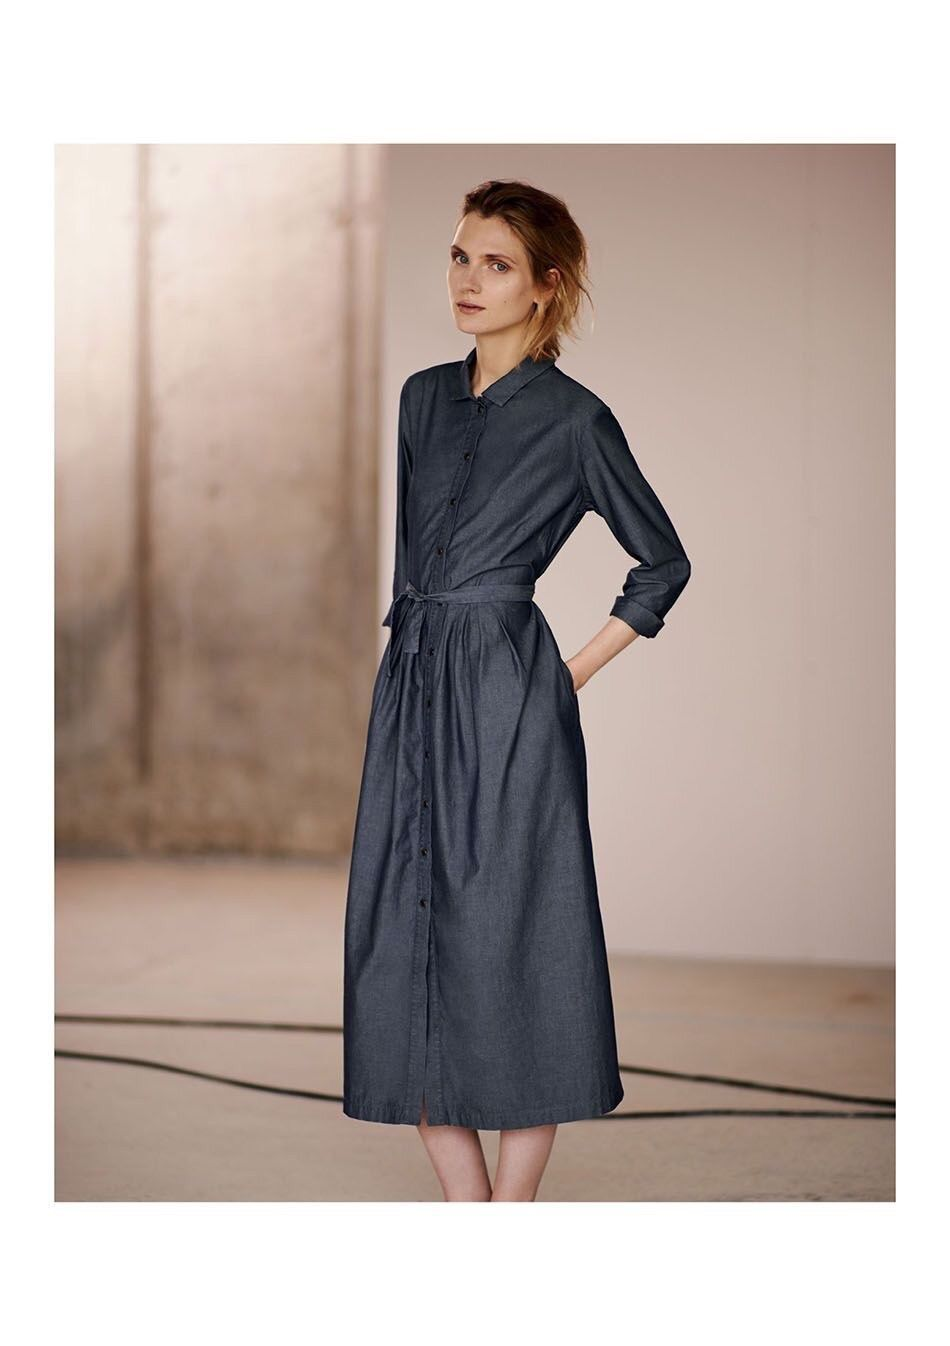 e6d4c0063ed2 TOAST SHIRT DRESS IN BEAUTIFUL QUALITY DARK CHAMBRAY COTTON. MIDI LENGTH.  Size 8 in Clothes, Shoes & Accessories, Women's Clothing, Dresses | eBay